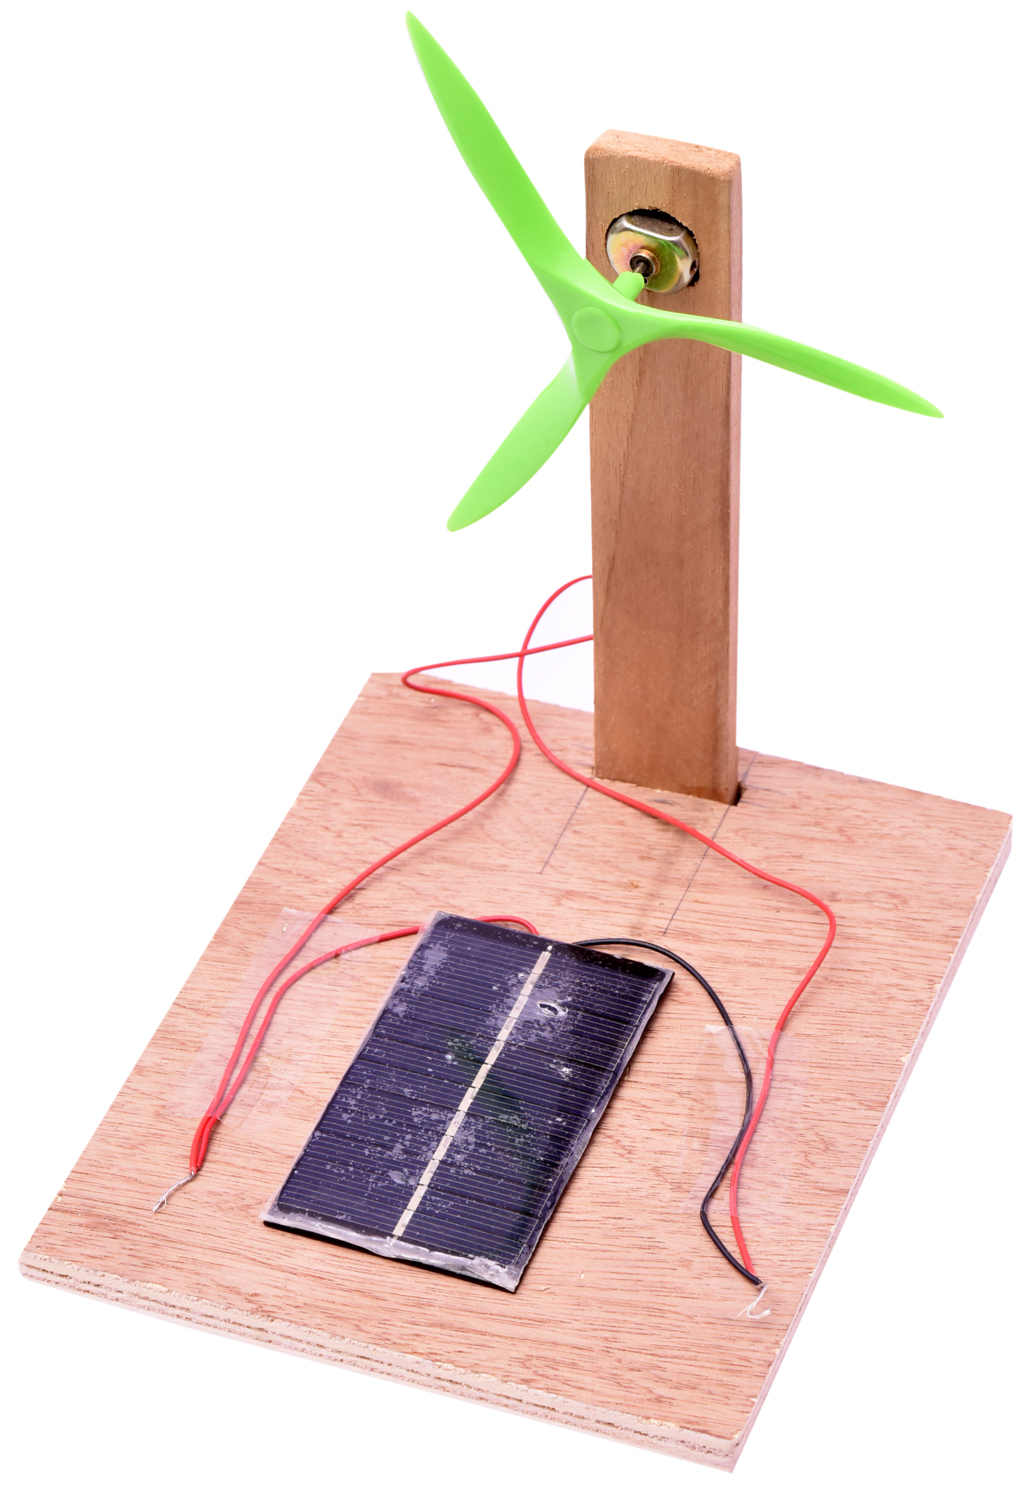 22145 besides 5 Reasons Utility  pani b 7215976 moreover Mag ism Sci Advent Day 12 together with Extending Omans Gas Supply also Tech Hack How Charge Your Phone Using Lemon. on electricity science project